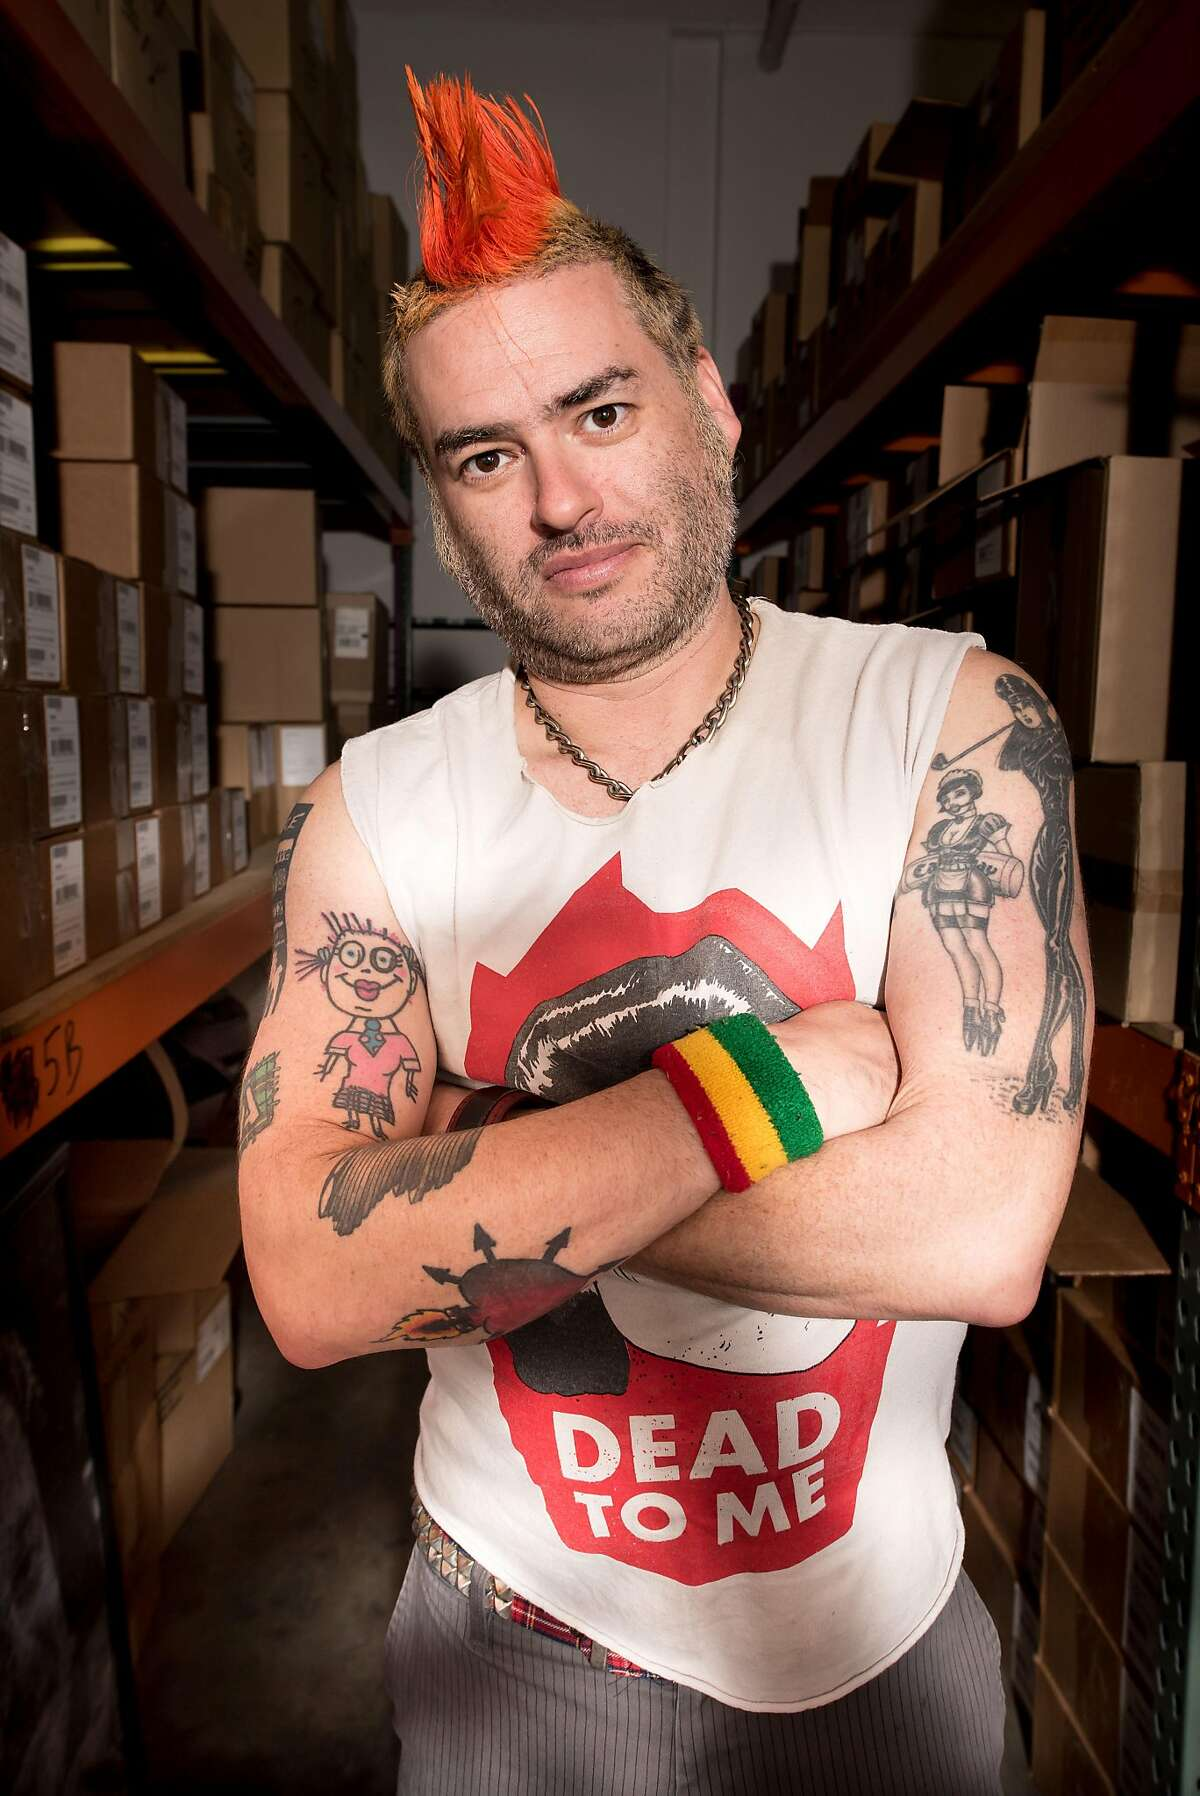 Fat Mike, frontman for NOFX, has collaborated with Stone Brewing for not only a�Punk in Drublic hoppy lager, but a Punk in Drublic traveling music and beer festival.